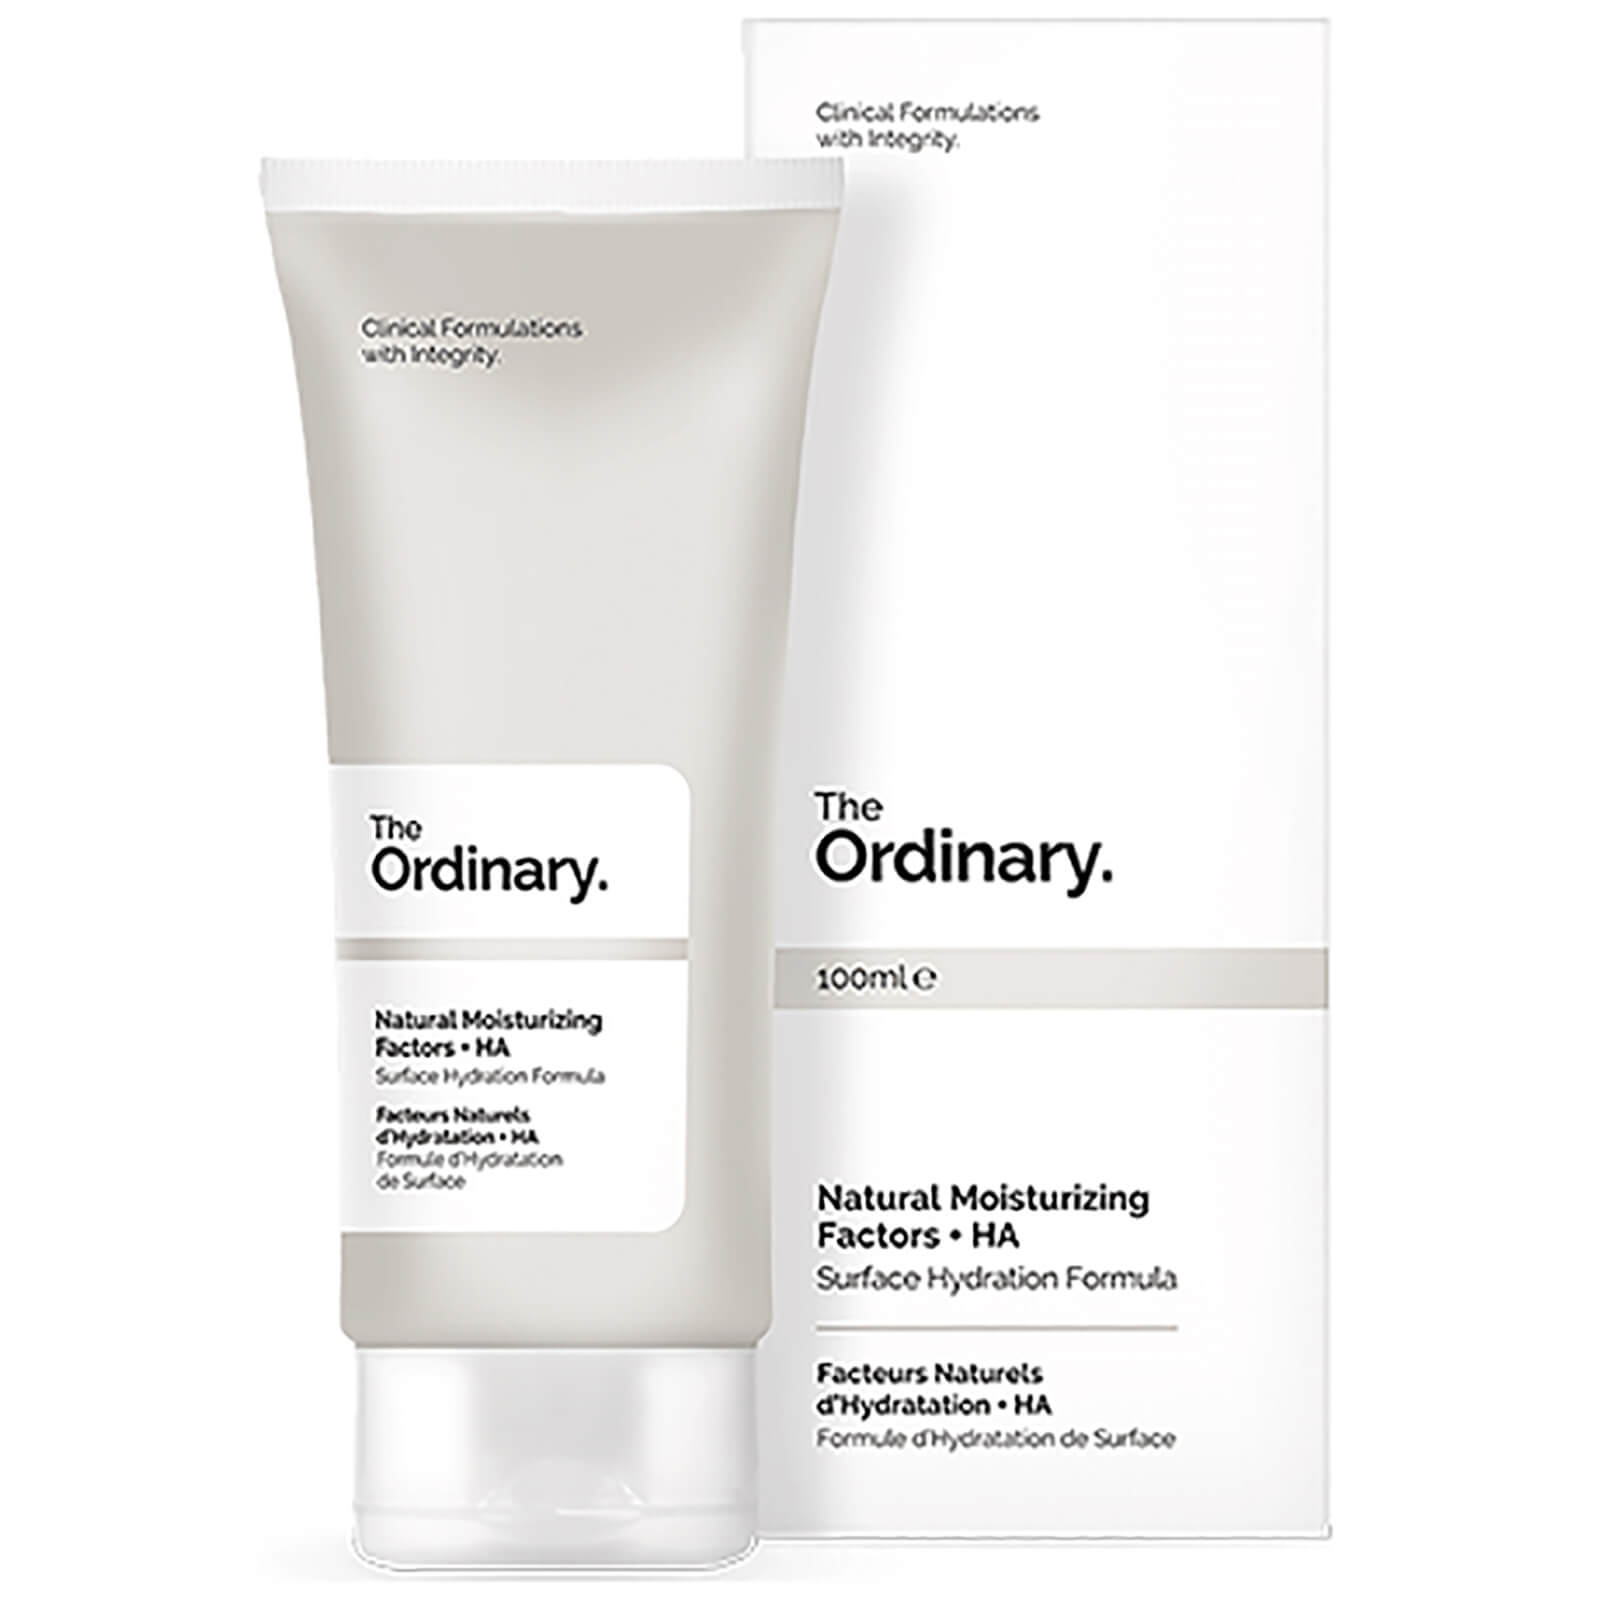 Natural Moisturizing Factors + HA by the ordinary #6